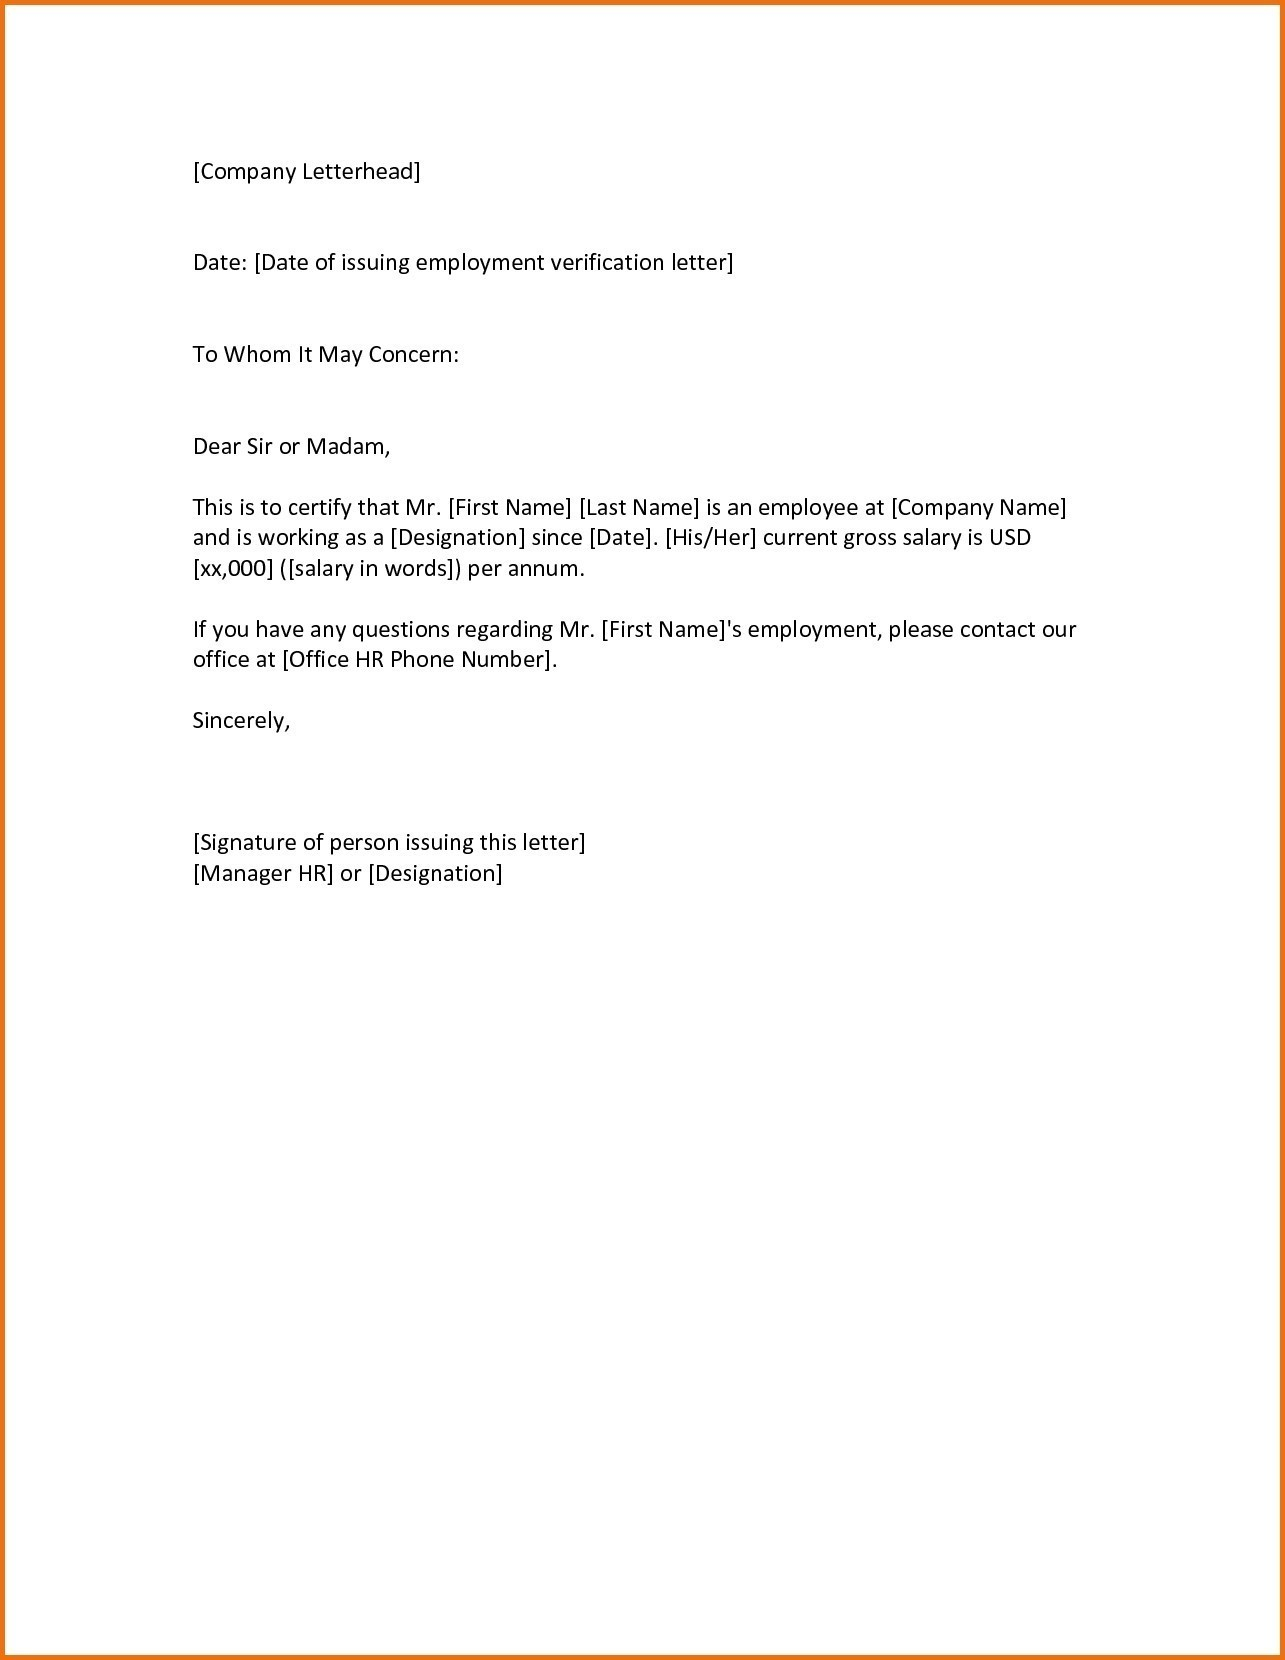 Employment Verification Letter To Whom It May Concern Template